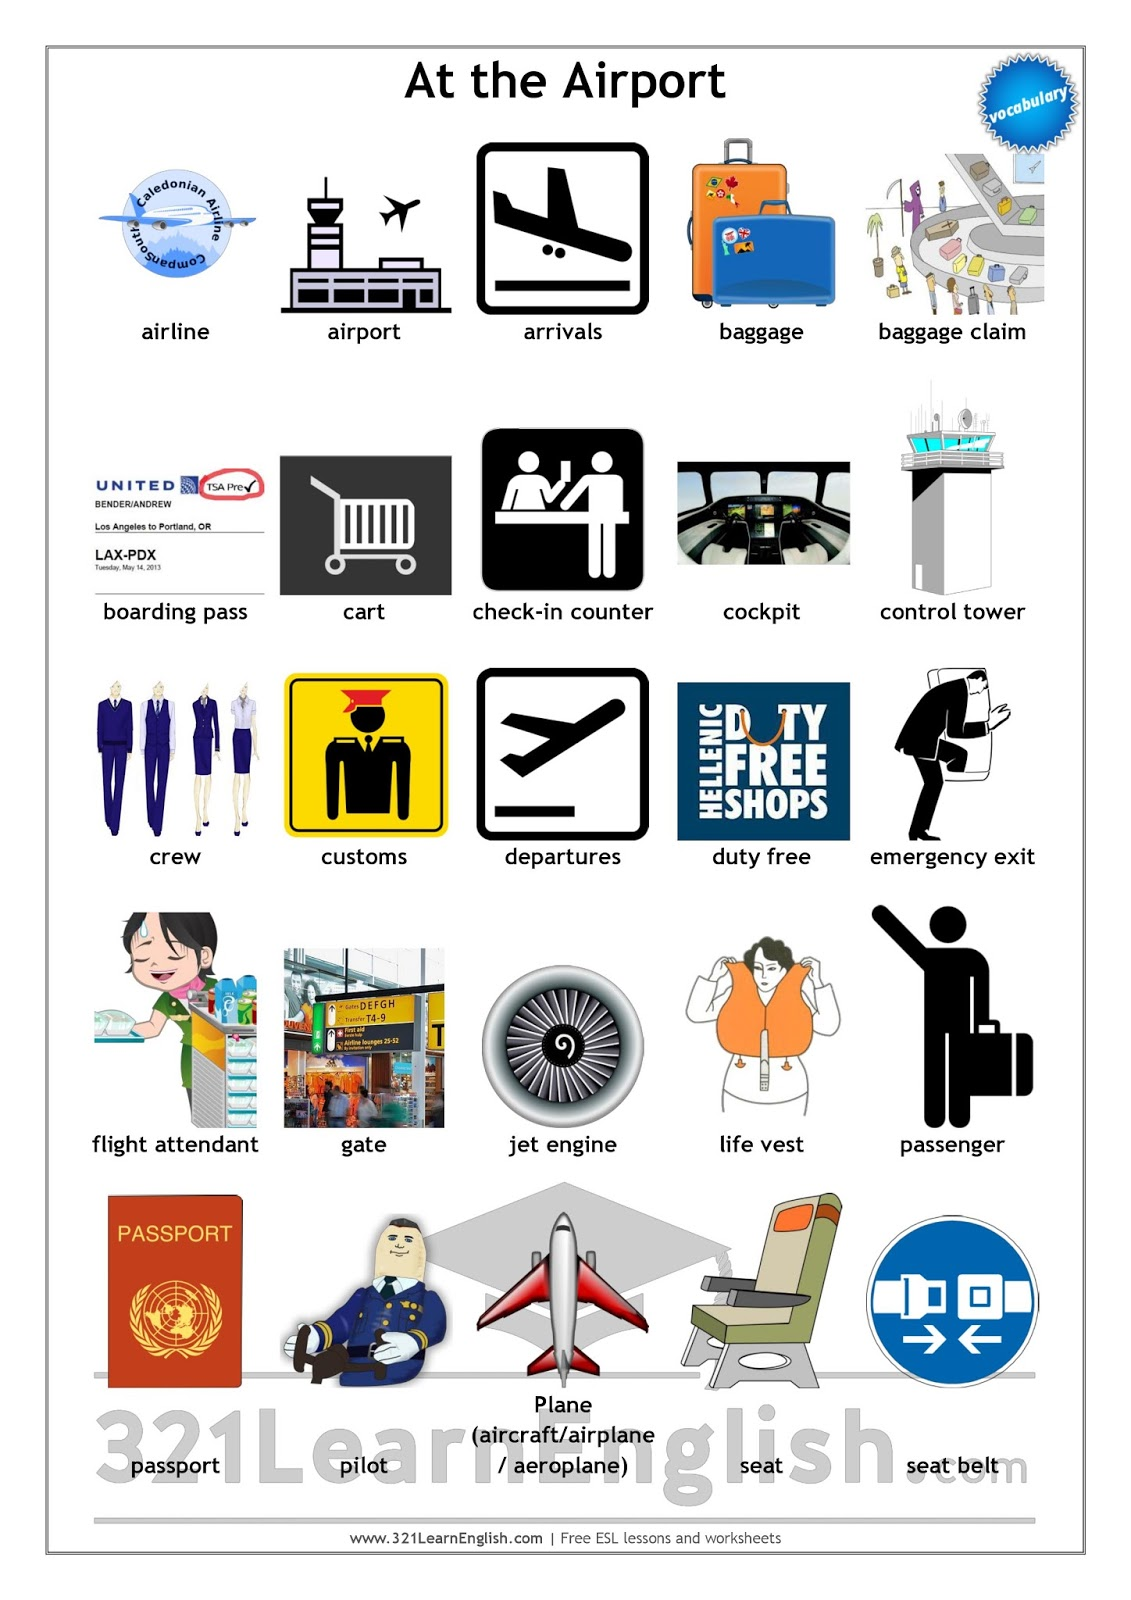 321 Learn English Com  Vocabulary  At The Airport (level  B1)